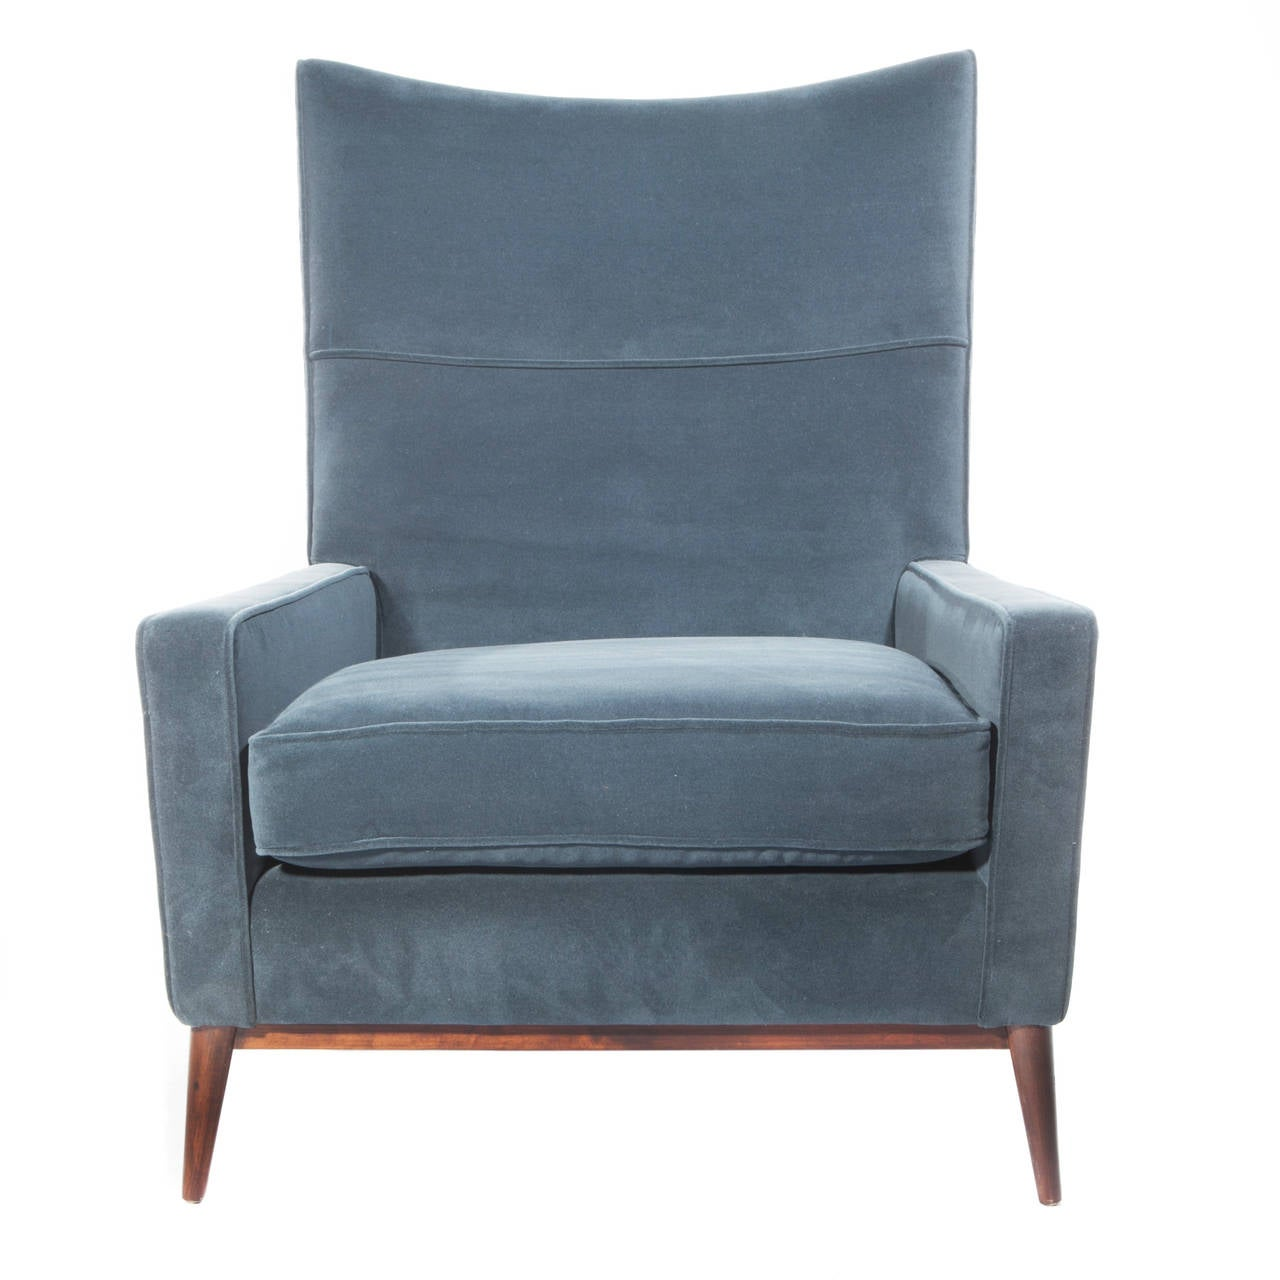 Paul McCobb High Back Lounge Chair And Ottoman At 1stdibs